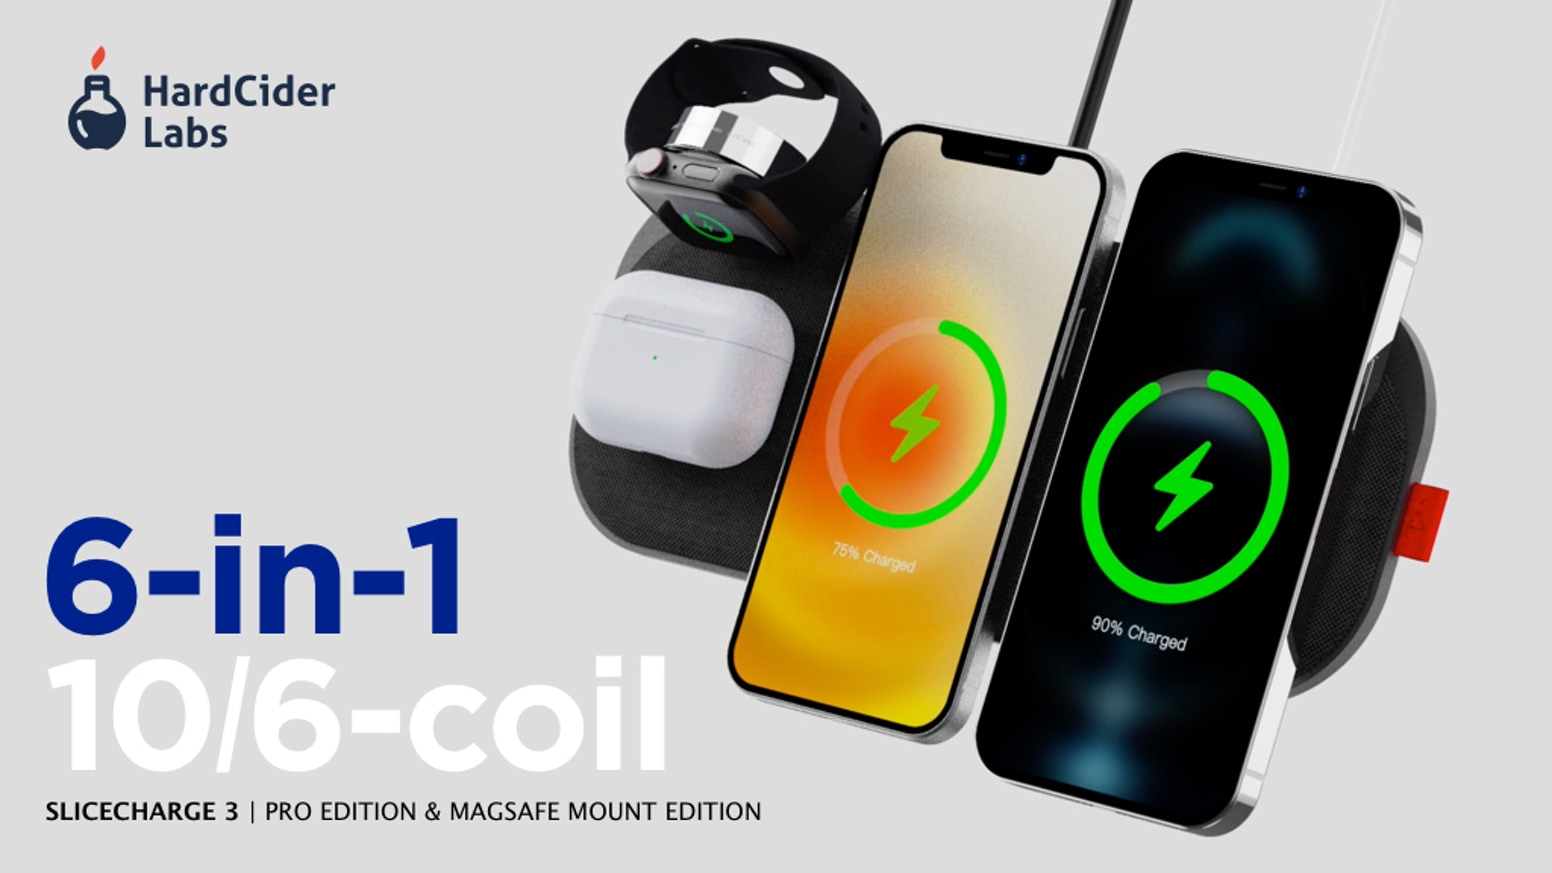 Fastest 6-in-1, 10-coil Wireless Charging Station | Built-in 3rd-Party MFi-Certified Apple Watch Charger | 65W USB-C PD Power Supply